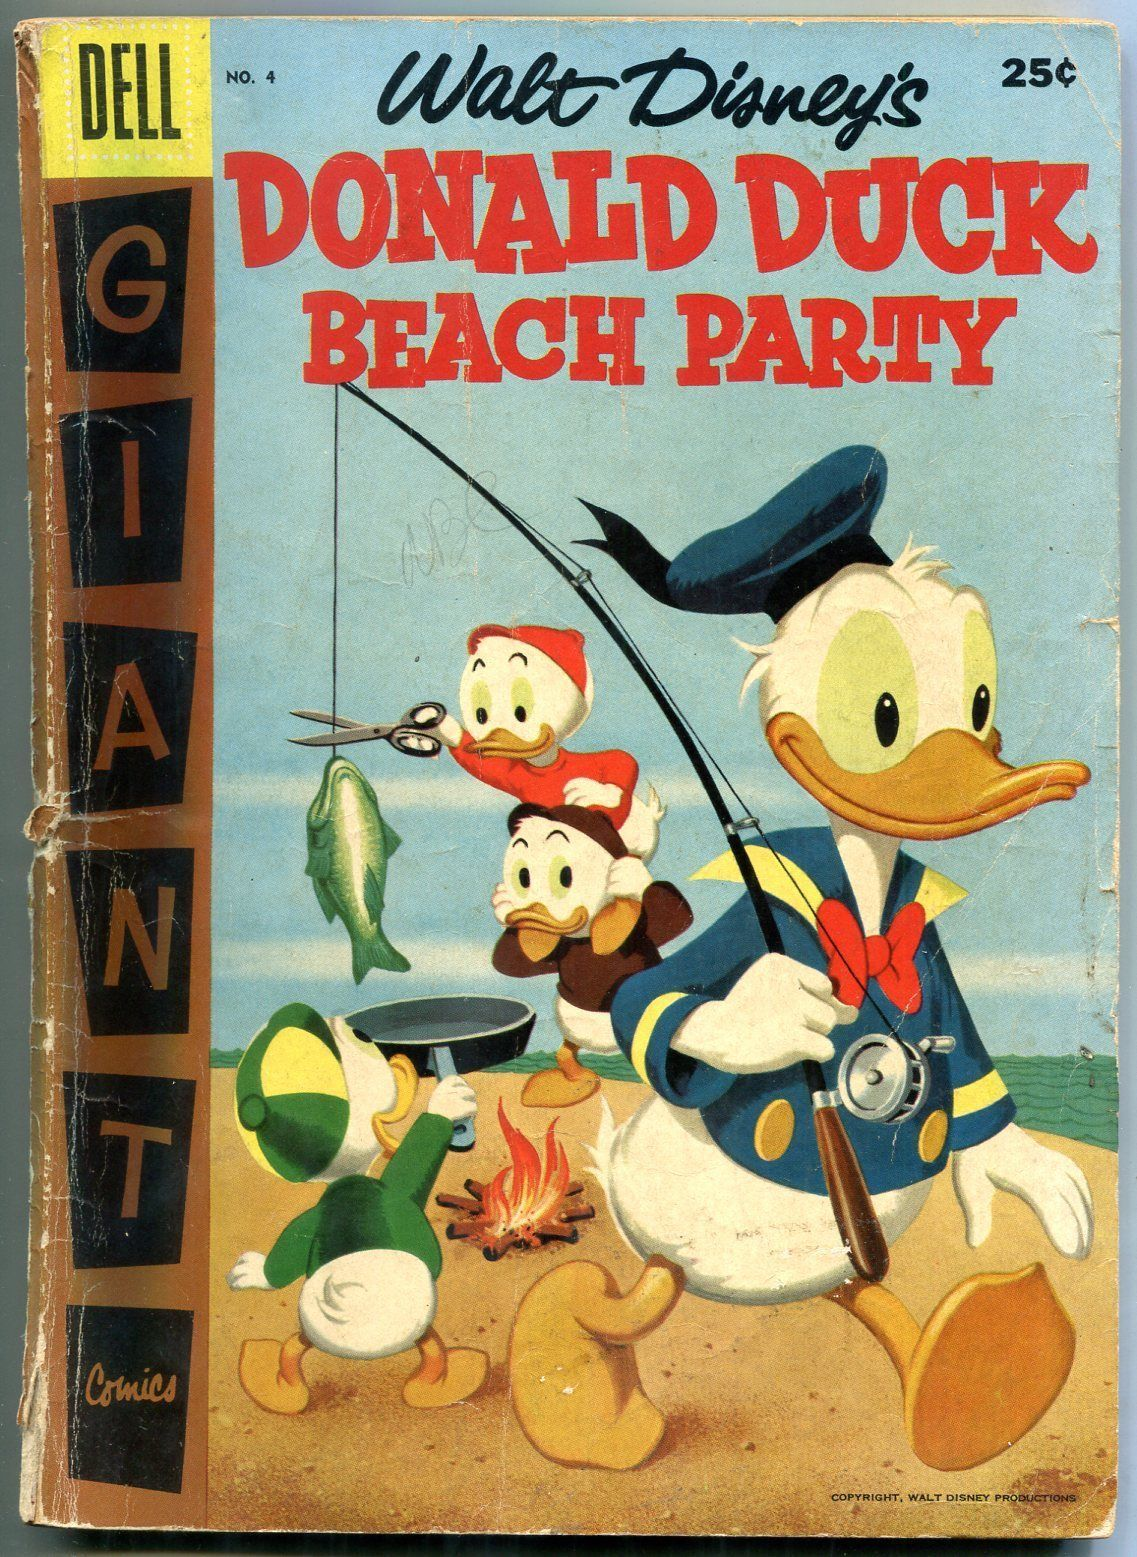 Primary image for Dell Giant Donald Duck Beach Party #4 1957 FAIR